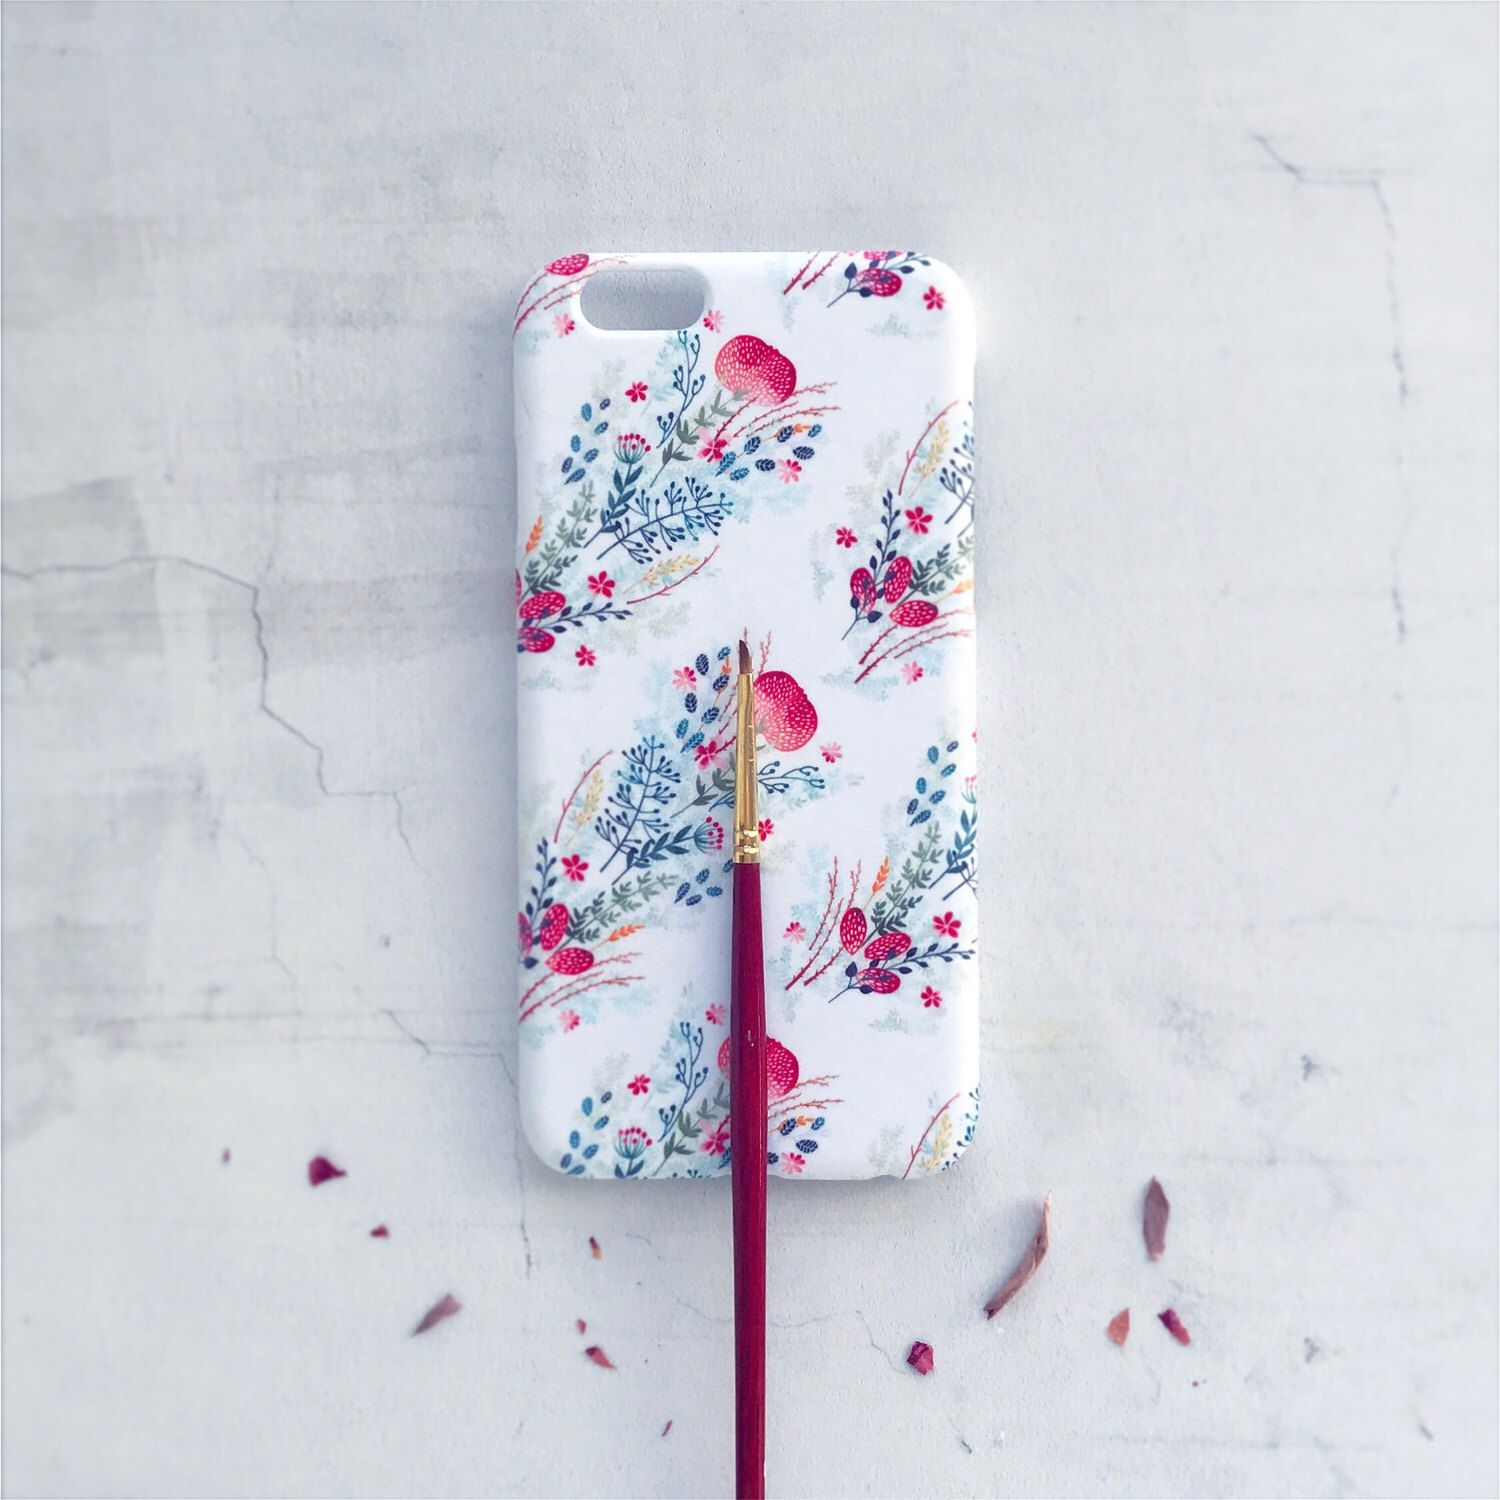 Oh Hello, Pretty! #florals #musthave #toughcase #accessories #hellonutcase #differencemakesus #case #phonecase #samsungcases #style #fashion #spring #feminine #pretty #girl